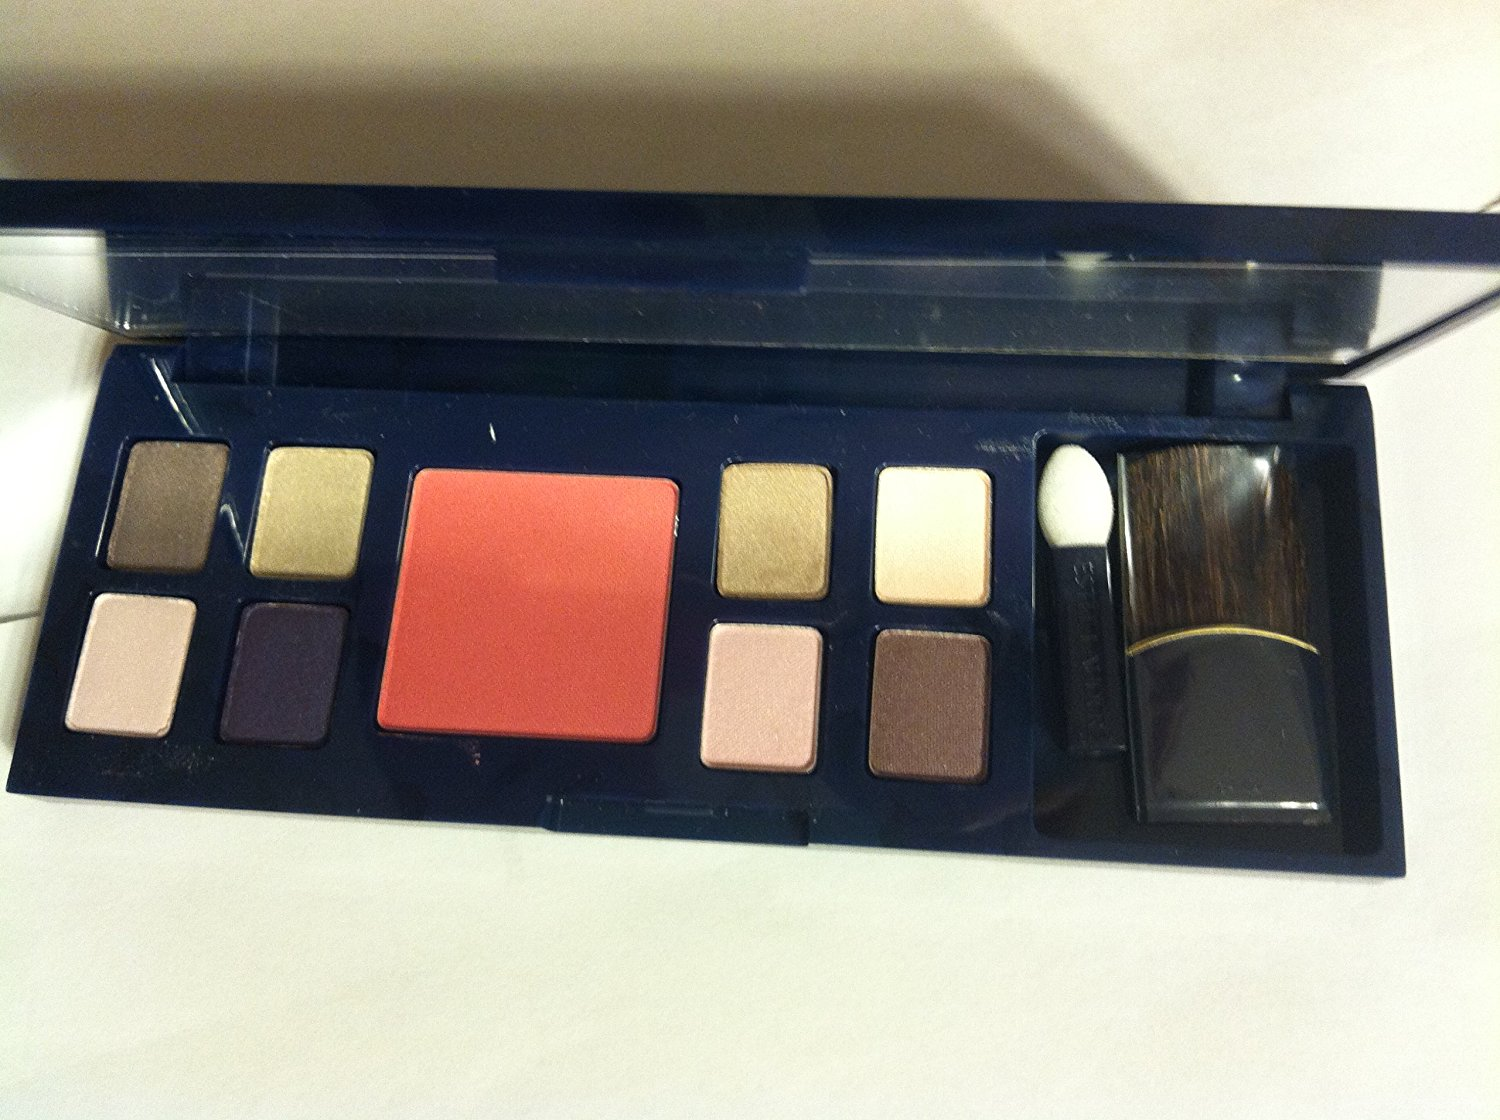 Estee Lauder Pure Color Eyeshadow (8 Color) and Pure Color Blush: 72 Amazing Grey +01 Pink Flash +43 Polished Platinum +09 Amethyst Spark + 18 Sepia Sand +10 Ivory Slipper +Pure Color Eyeshadow Duo 11 Shells (0.01 Oz/0.35 G Each)+pure Color Blus 02 Pink Kiss (0.09 Oz/2.5g)